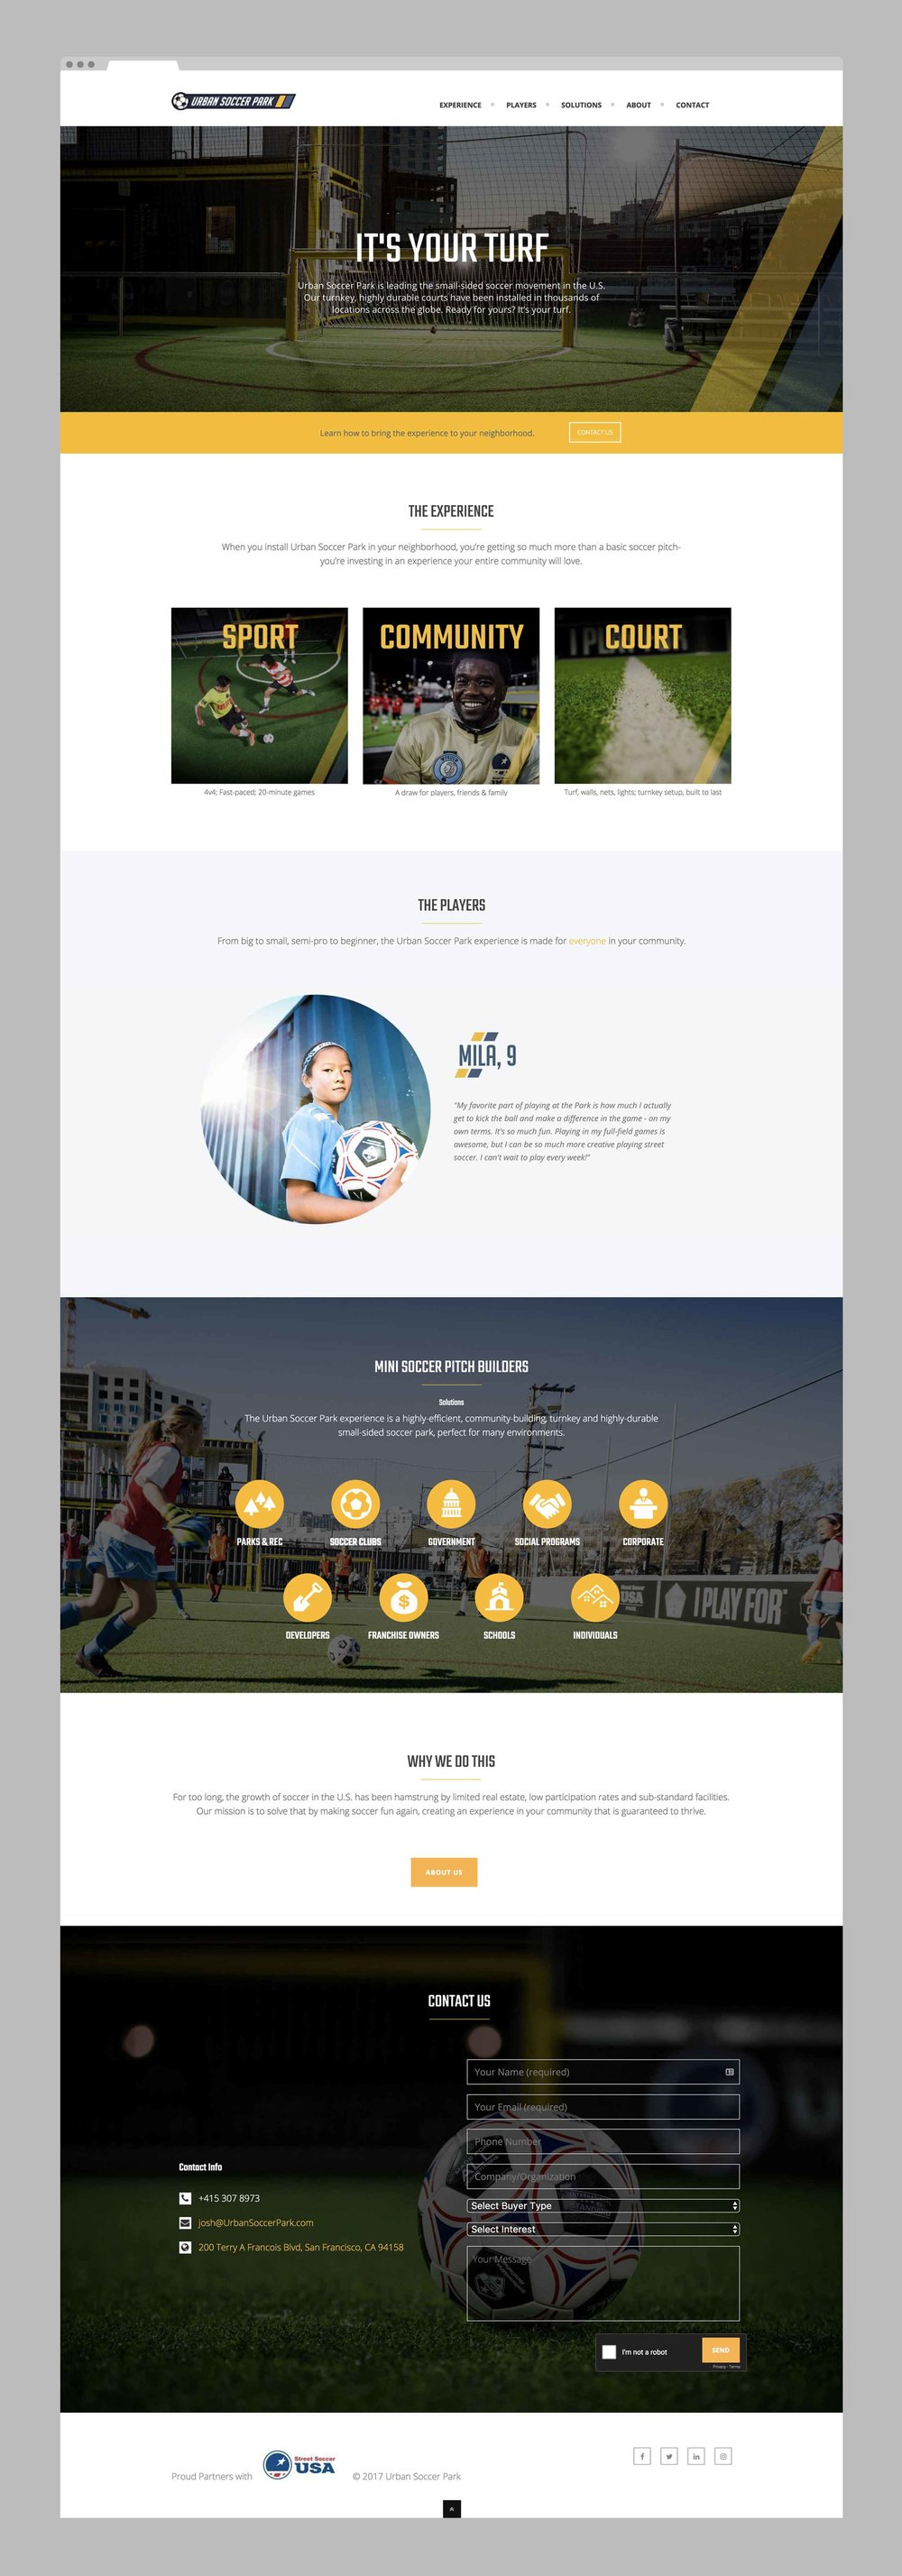 A website page to show the Urban Soccer Park look and feel of the brand.